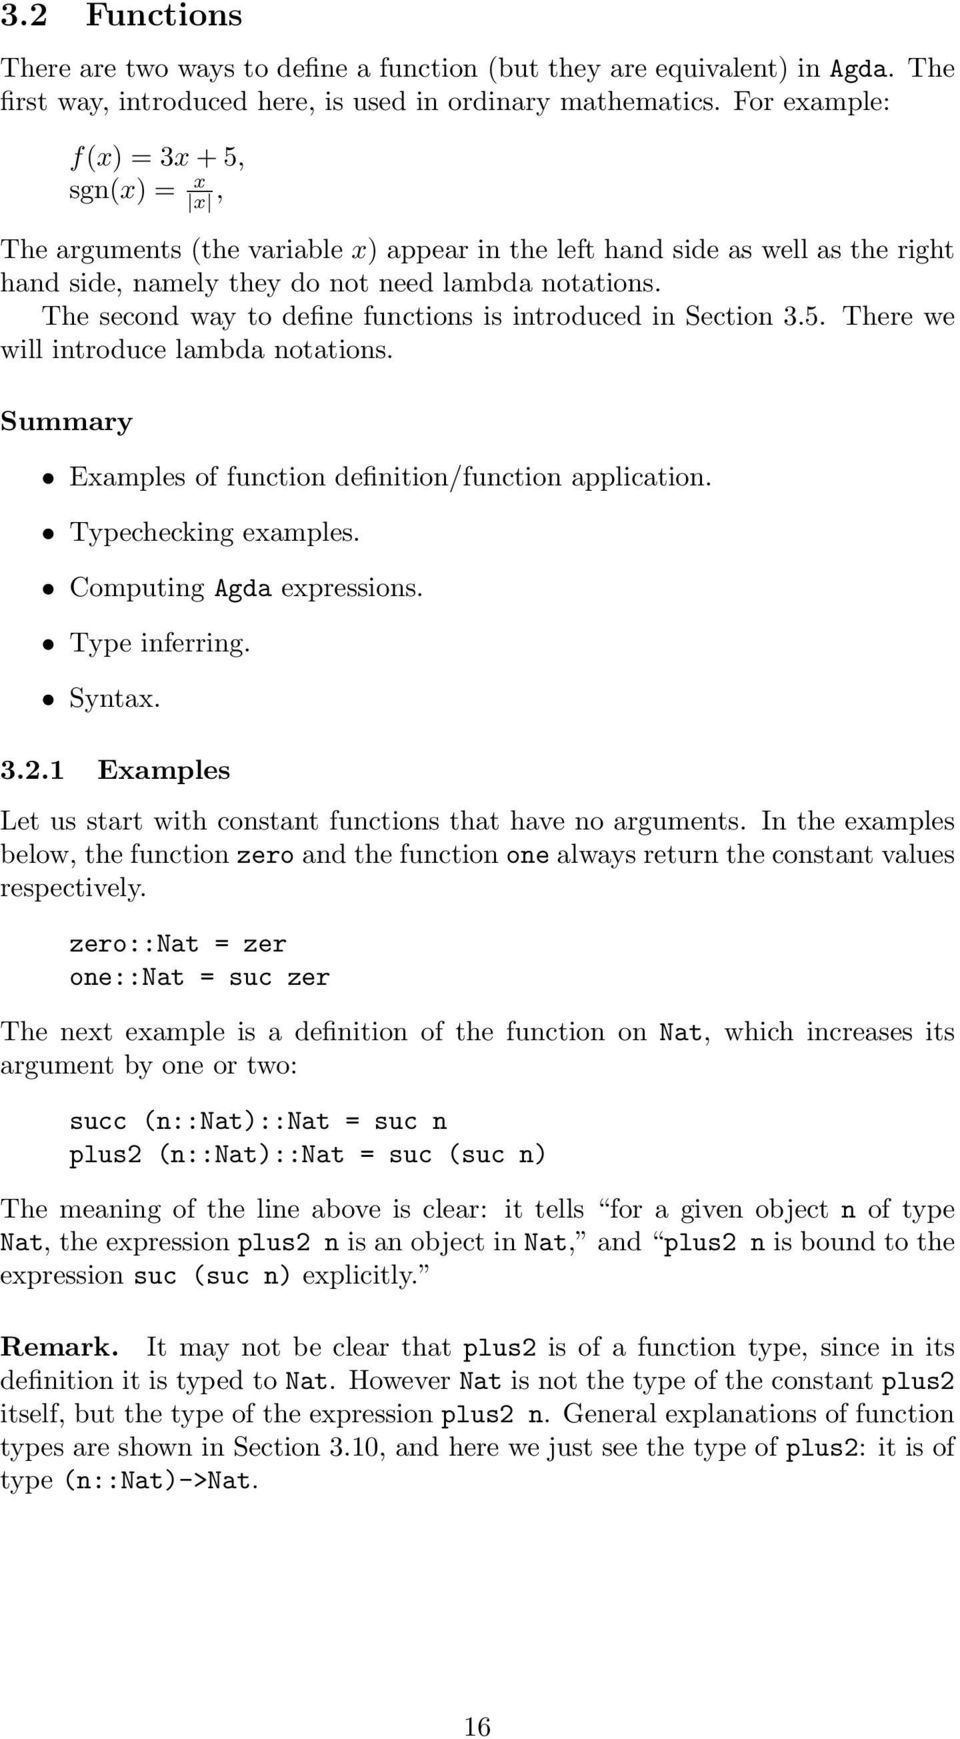 The second way to define functions is introduced in Section 3.5. There we will introduce lambda notations. Summary Examples of function definition/function application. Typechecking examples.